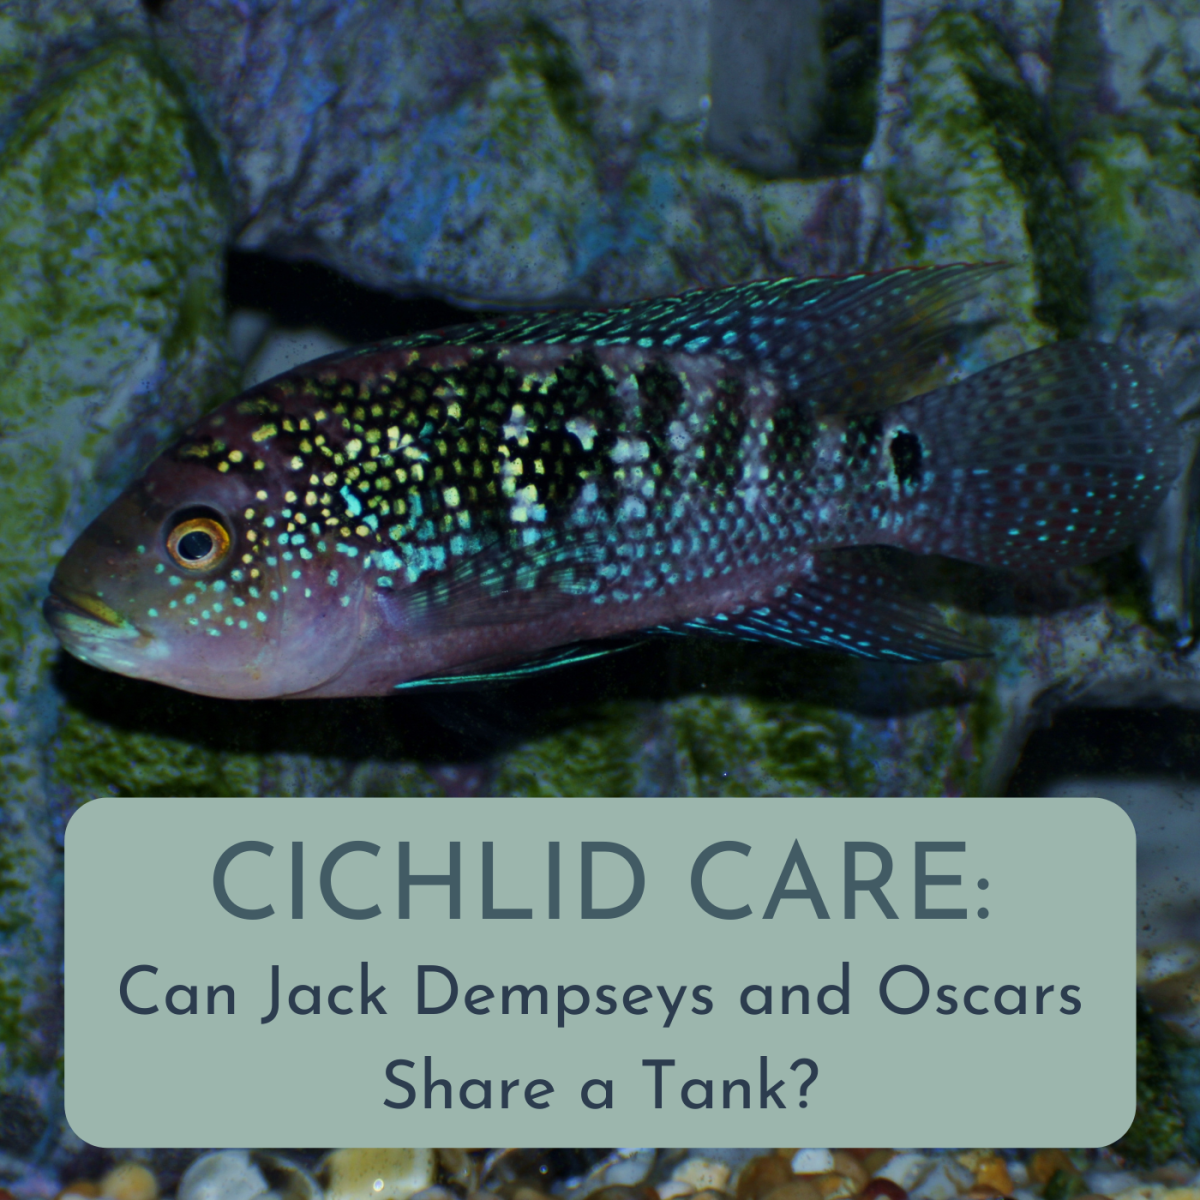 Can a Jack Dempsey and an Oscar Fish Live Together?